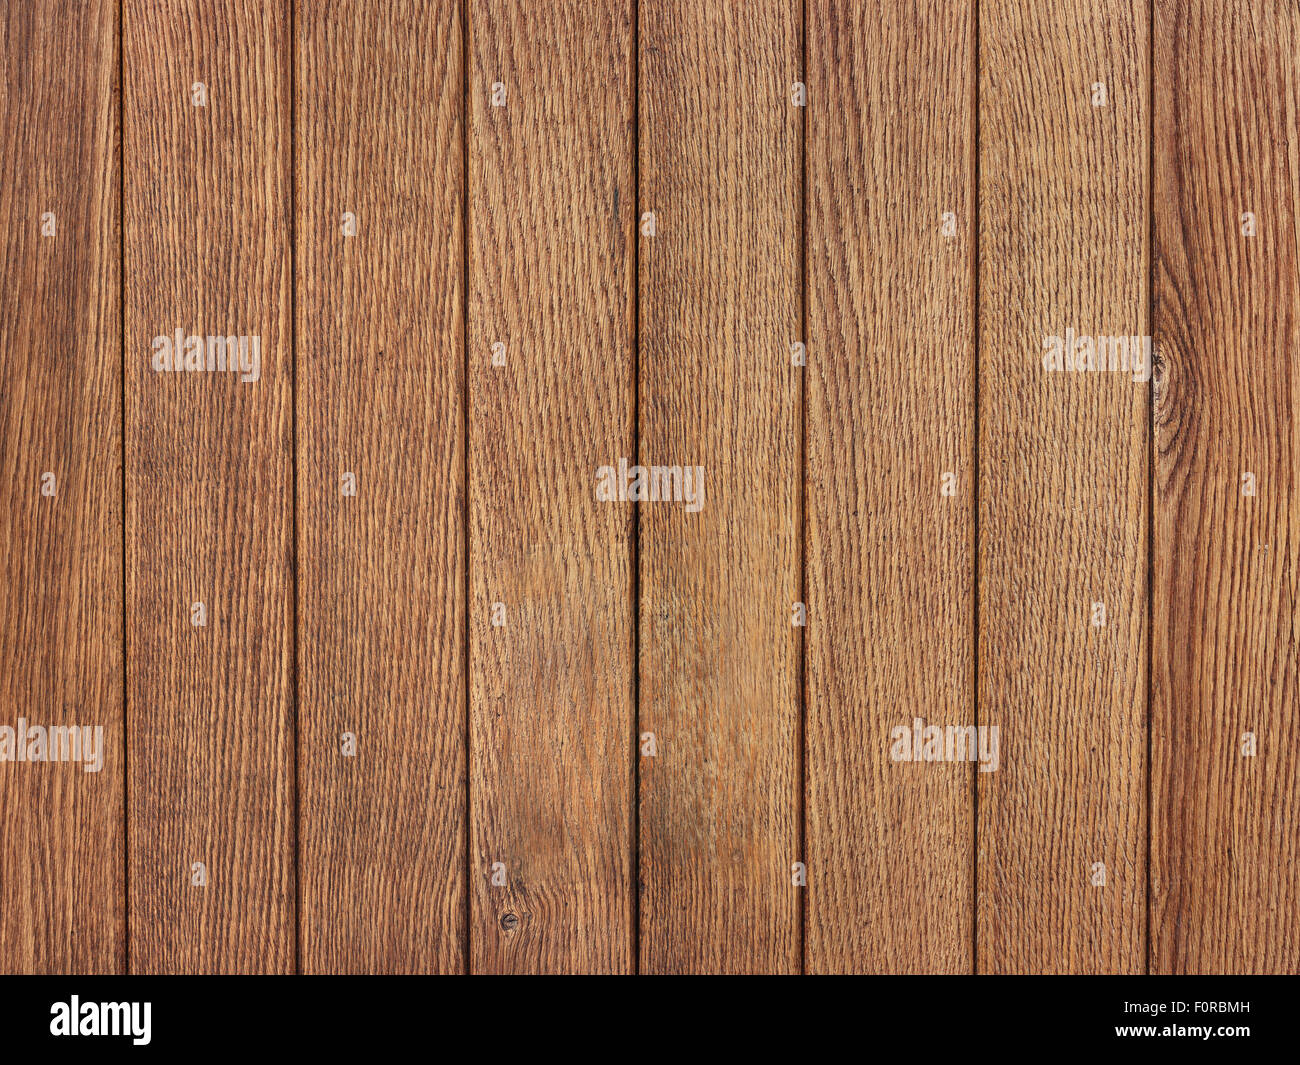 Holzvertäfelung Bilder Holzvertäfelung Stockfotos Holzvertäfelung Bilder Alamy